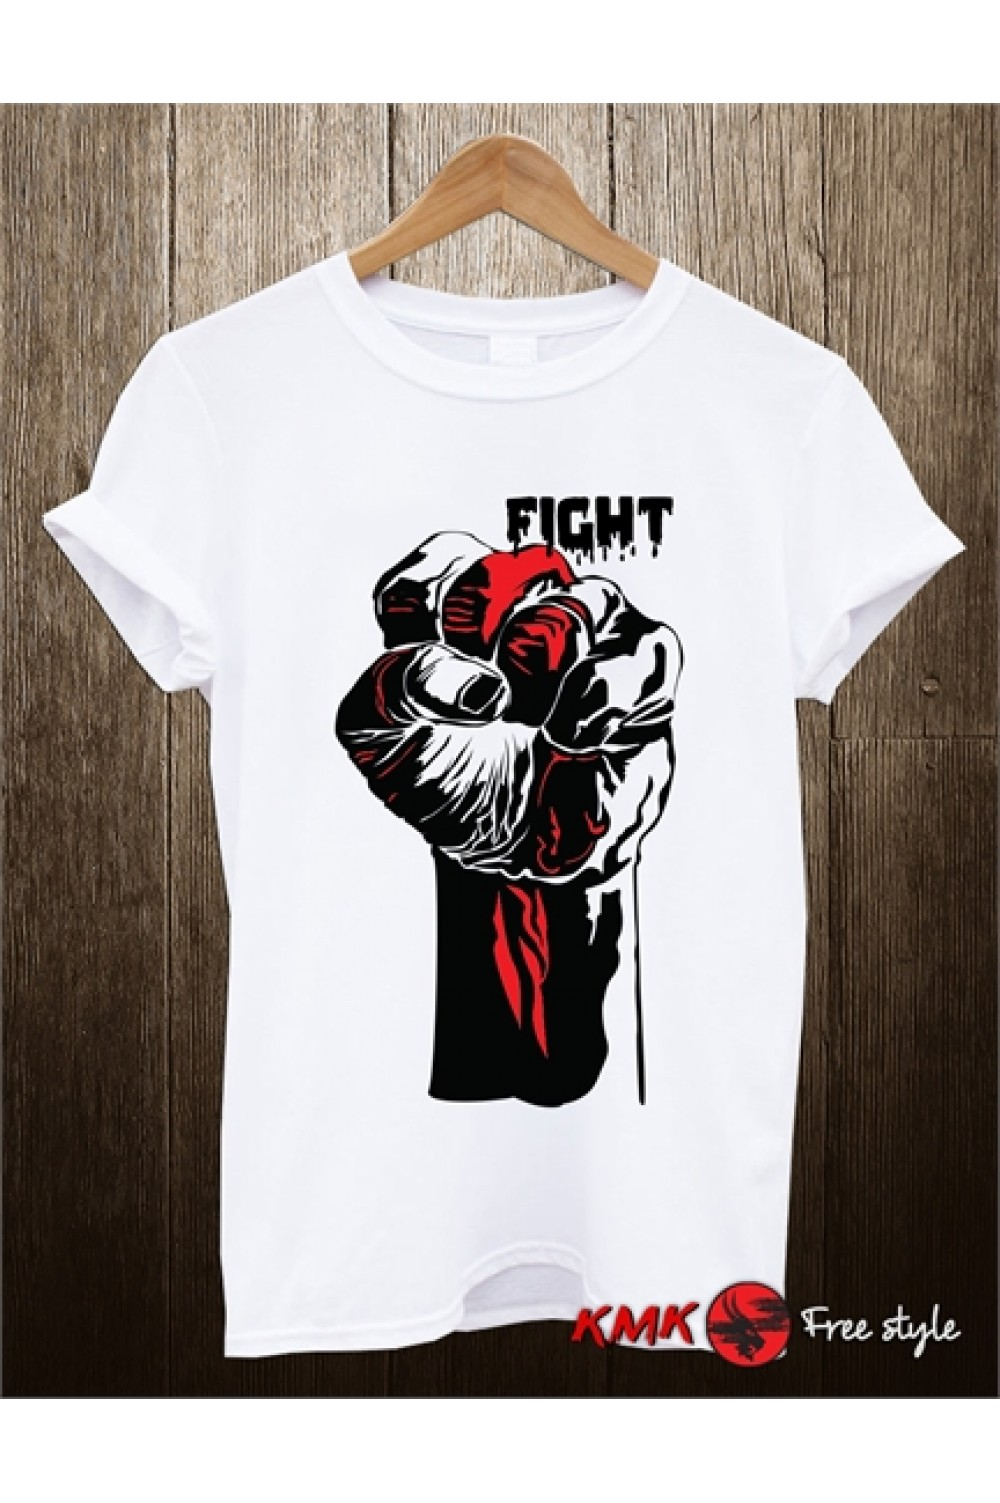 Fight Printed T shirt | Fighting Tee | Fist T-shirt | Short Sleeves Shirt